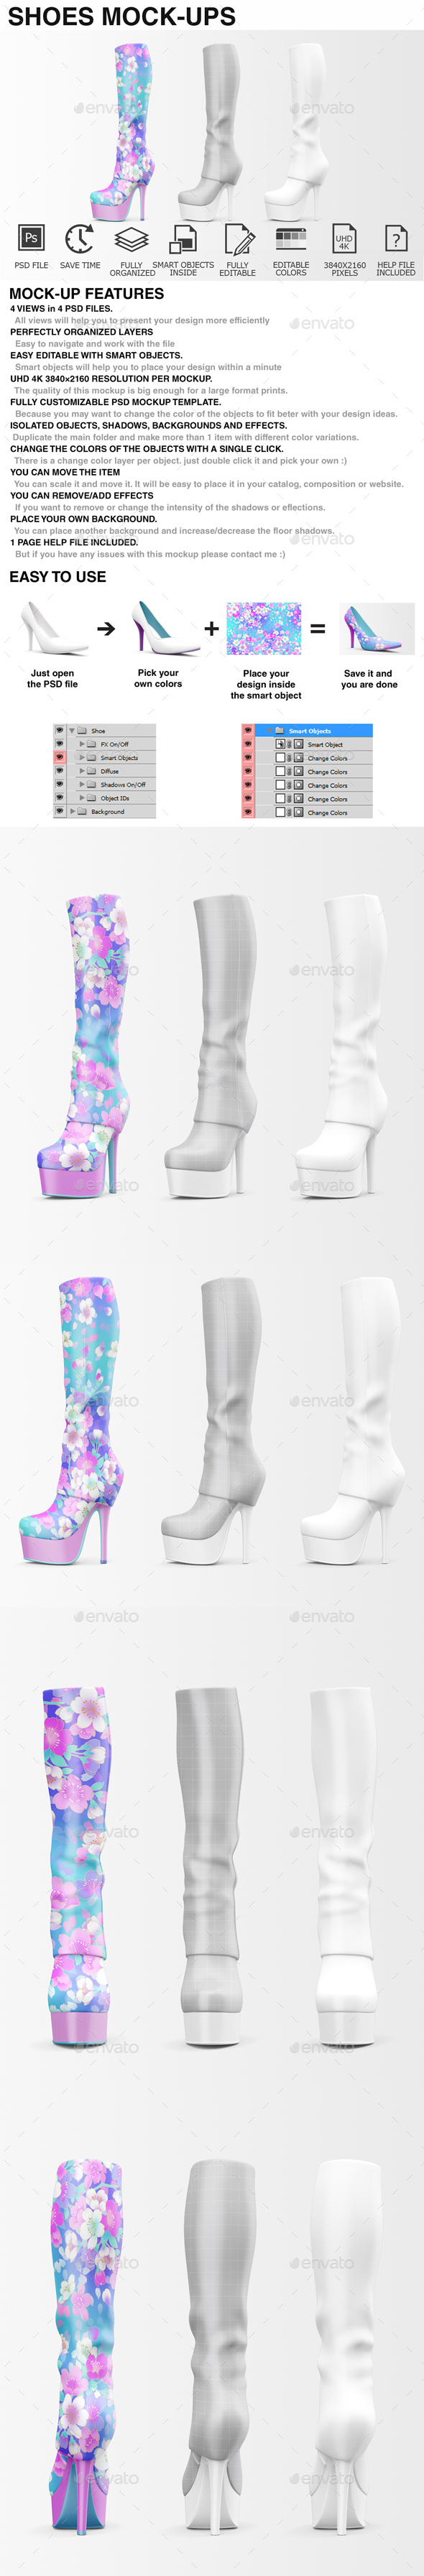 Shoes Mockup - Woman Shoes Mockup Edition - Miscellaneous Apparel